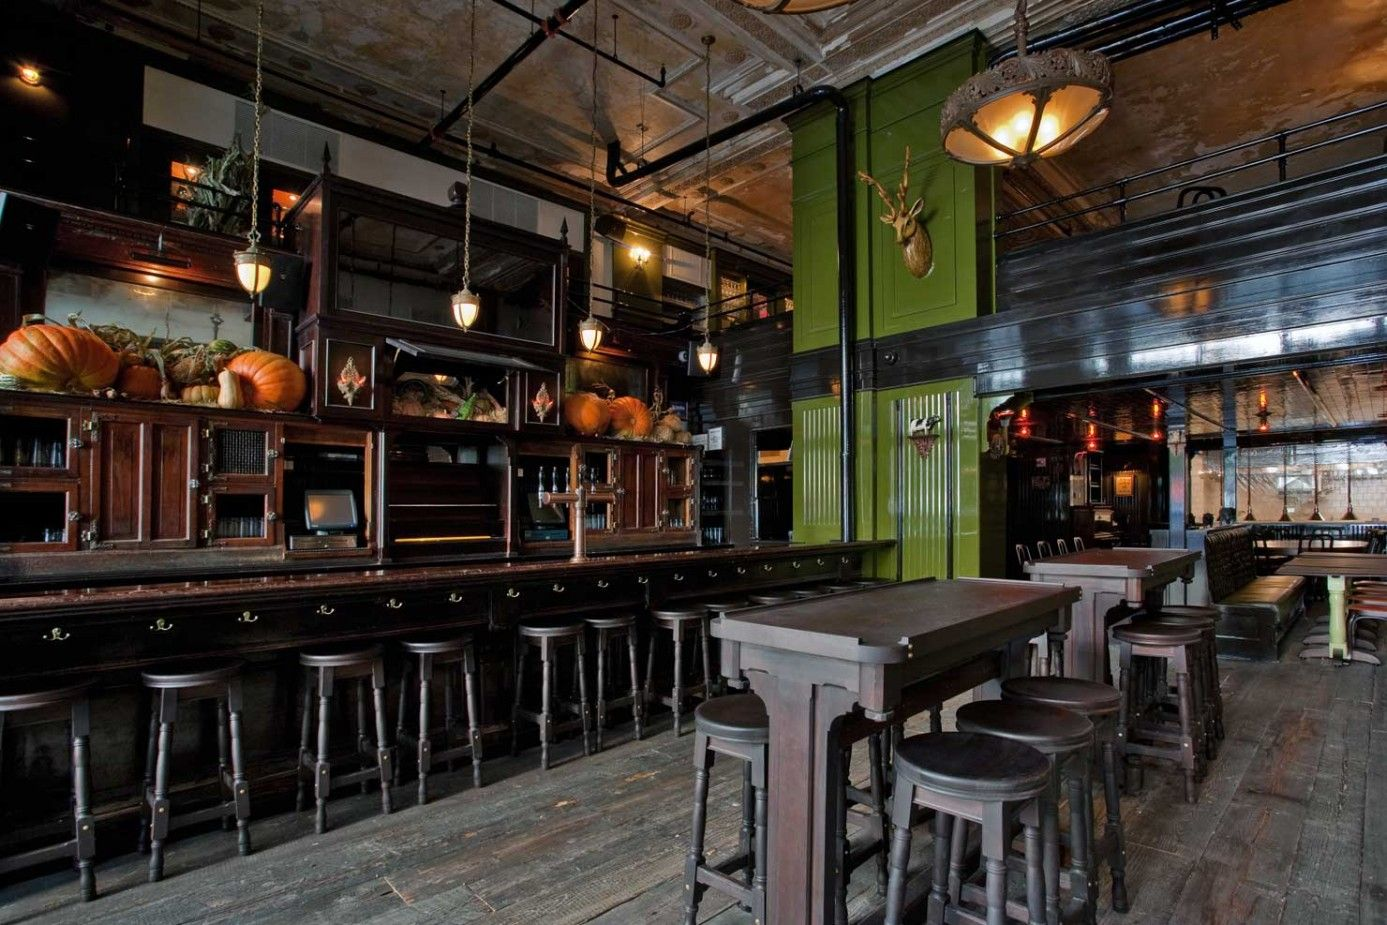 The Breslin Bar And Dining Room 1000 Images About Bar Interiors On Pinterest Woodsman Tavern